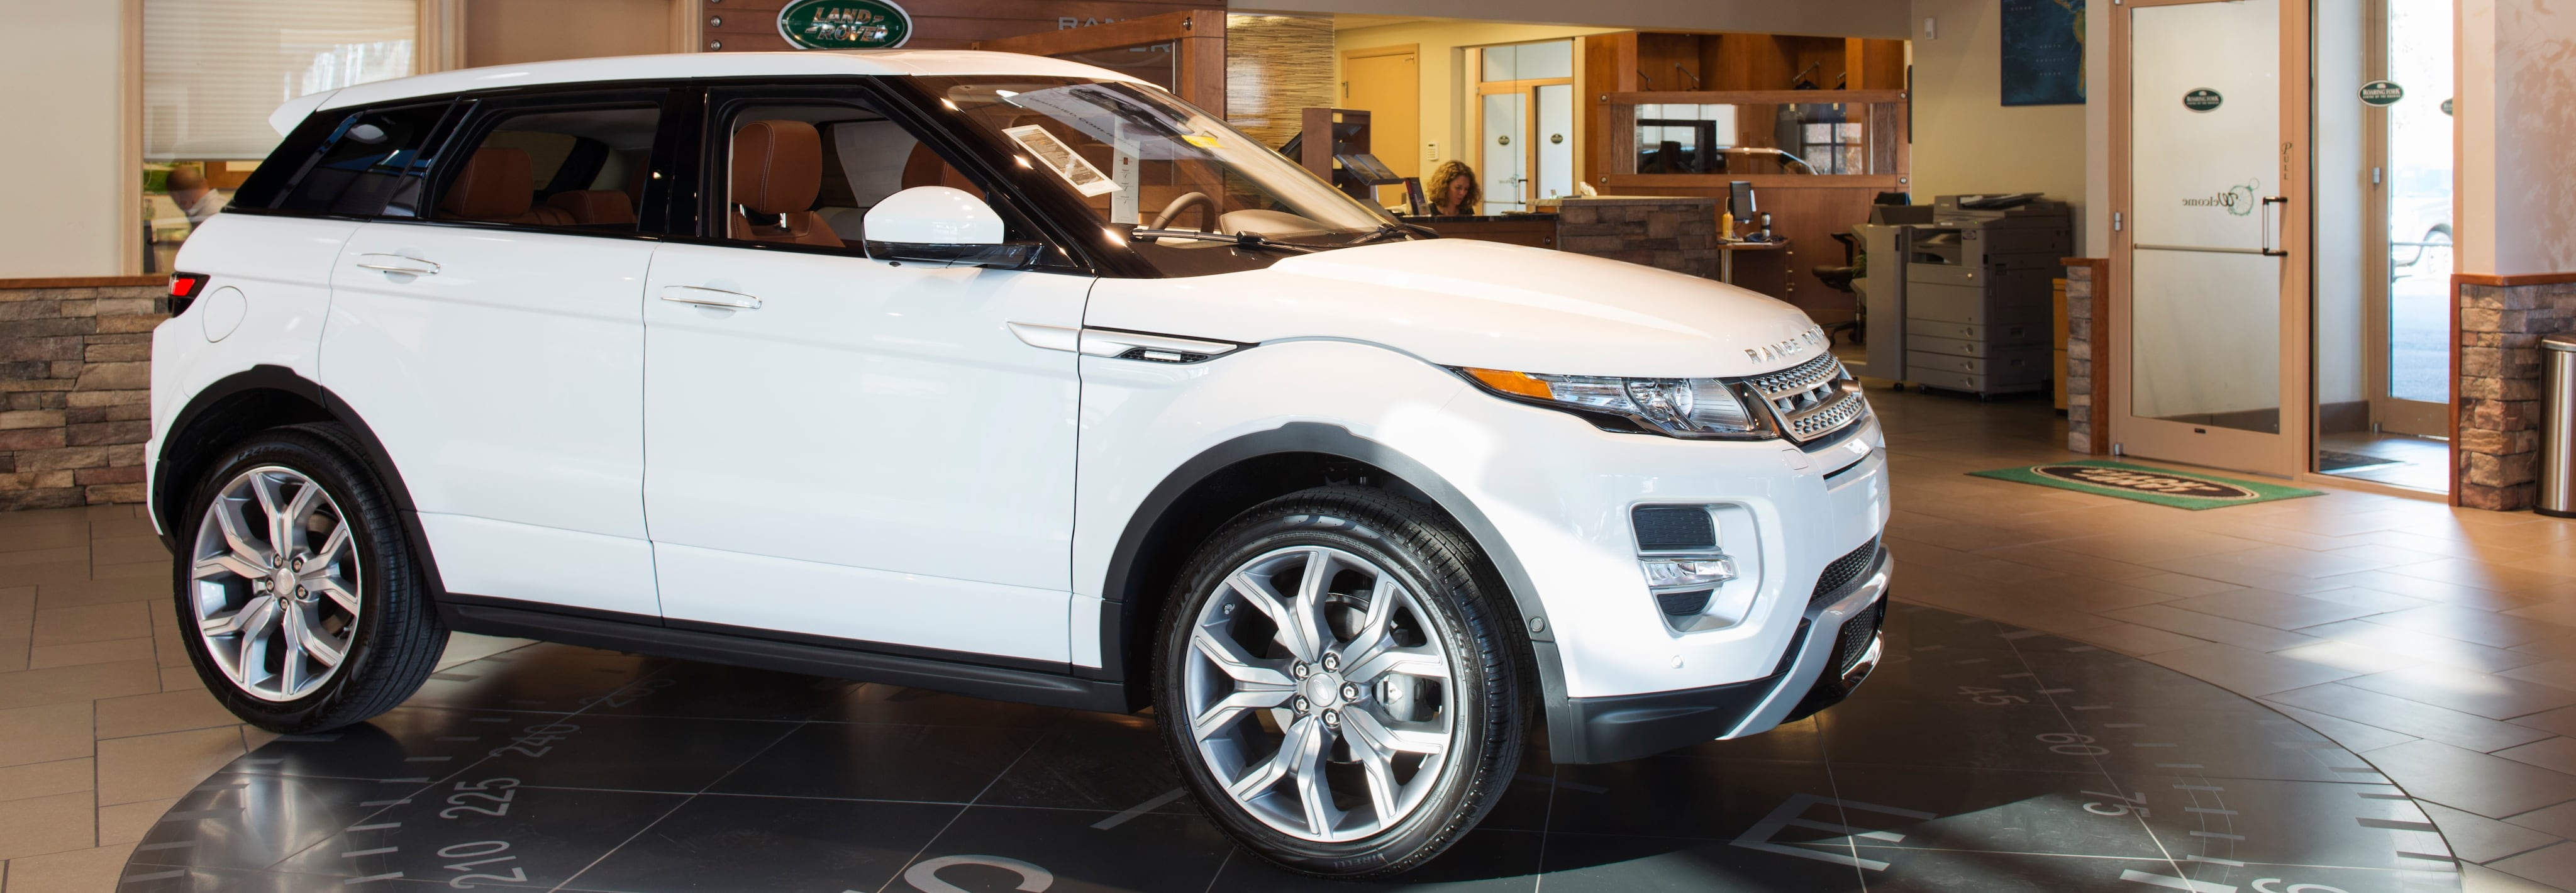 landrover used sport lease vancouver autoform vehicles supercharged rover land range